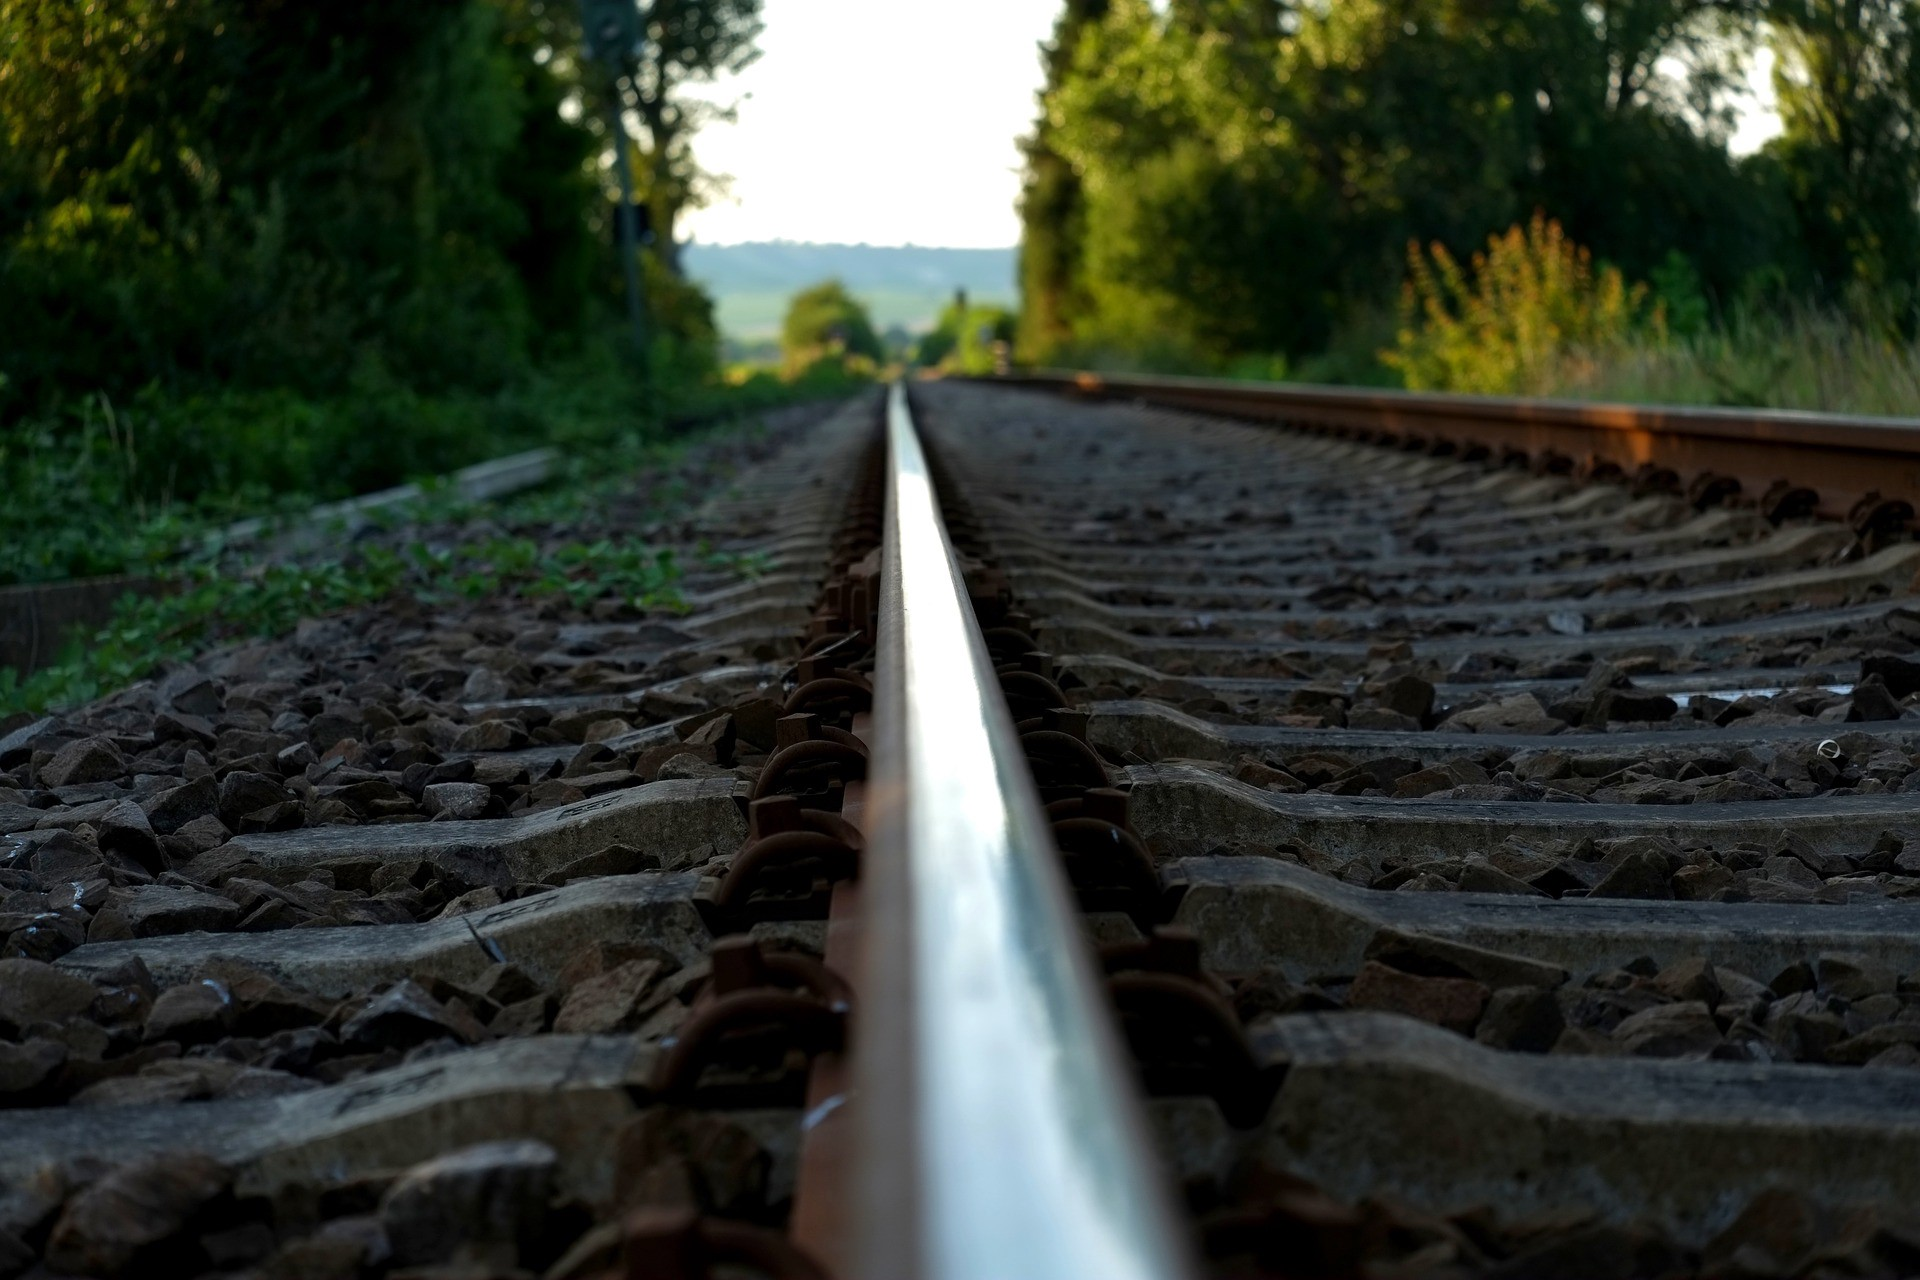 railroad rail in the midst of blurred background of nature